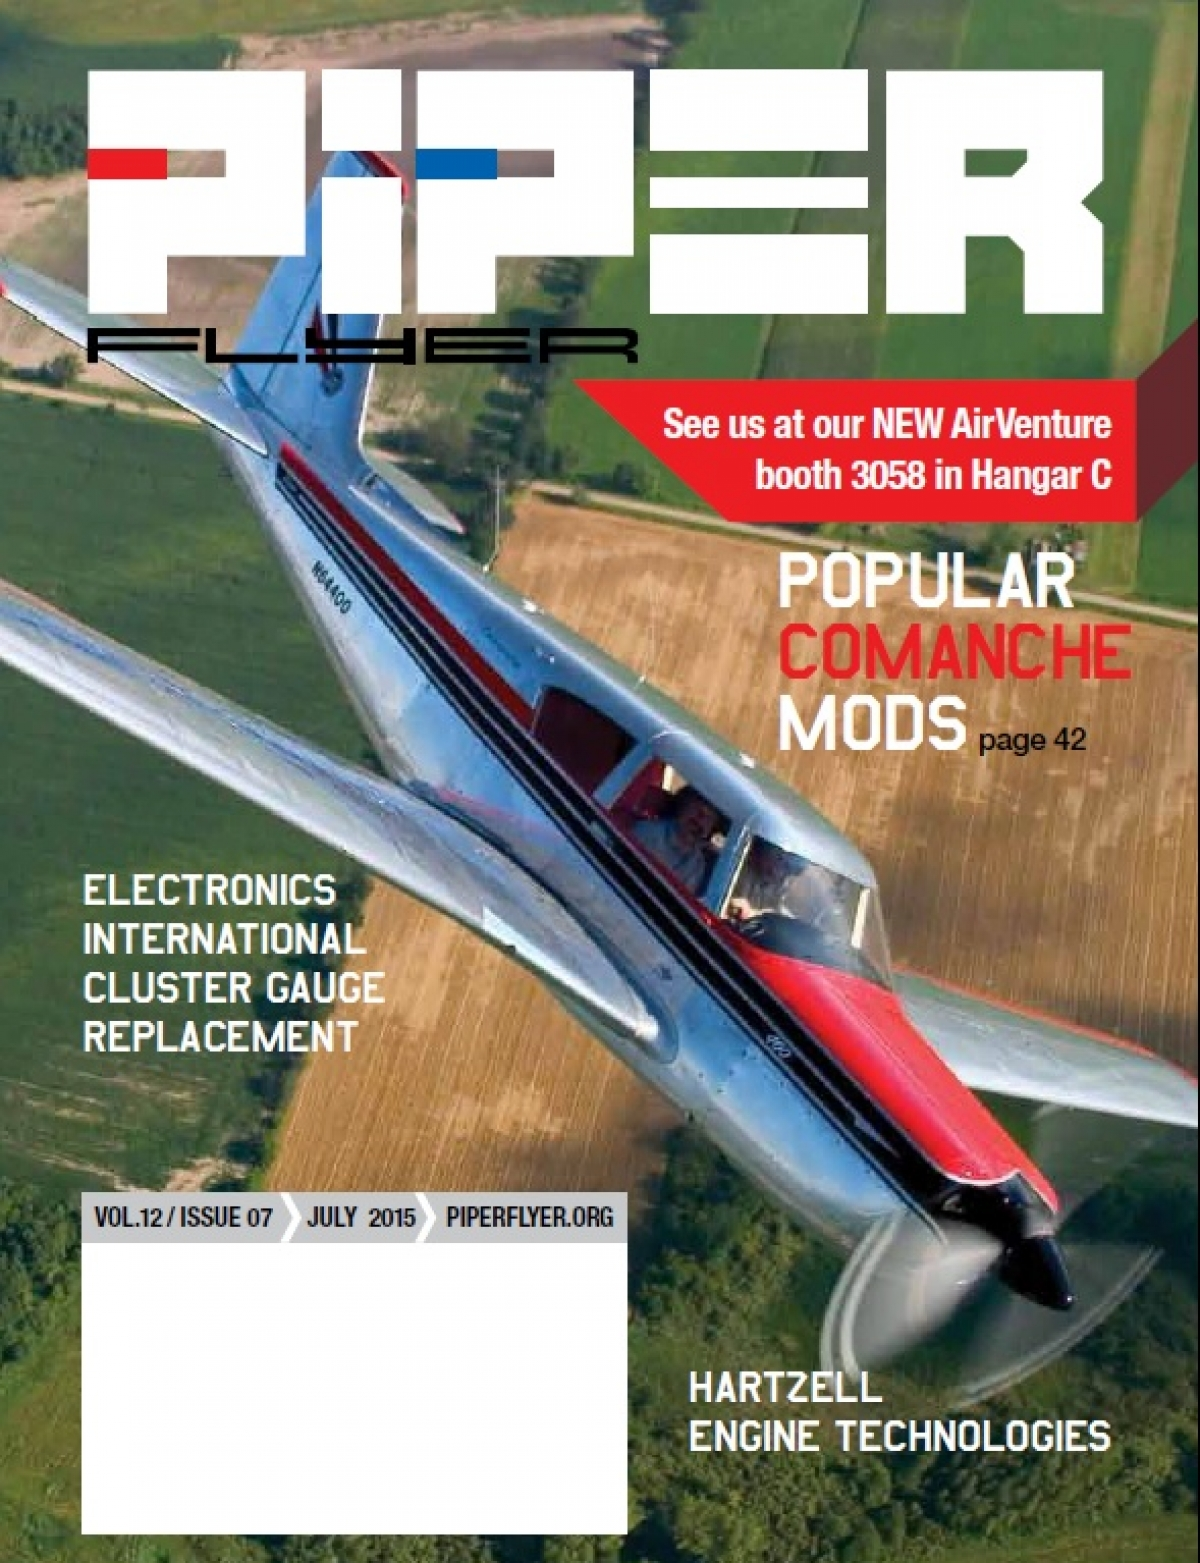 July 2015 Piper Flyer magazine